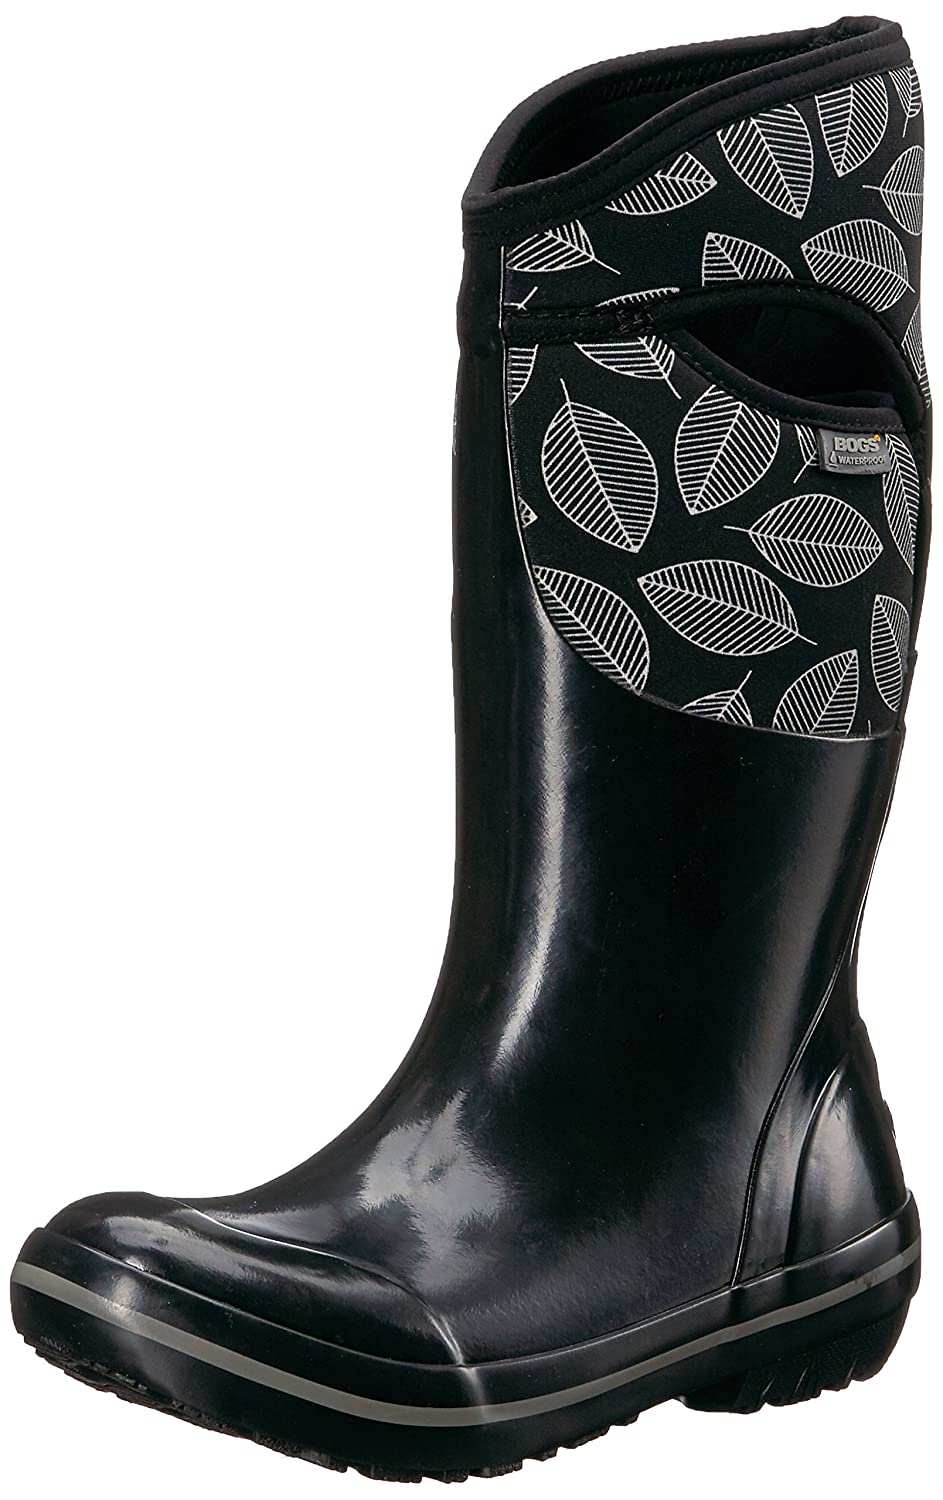 Bogs Women's Plimsoll Leafy Tall Snow Boot B01N5SMKBB 6 B(M) US|Black/Multi